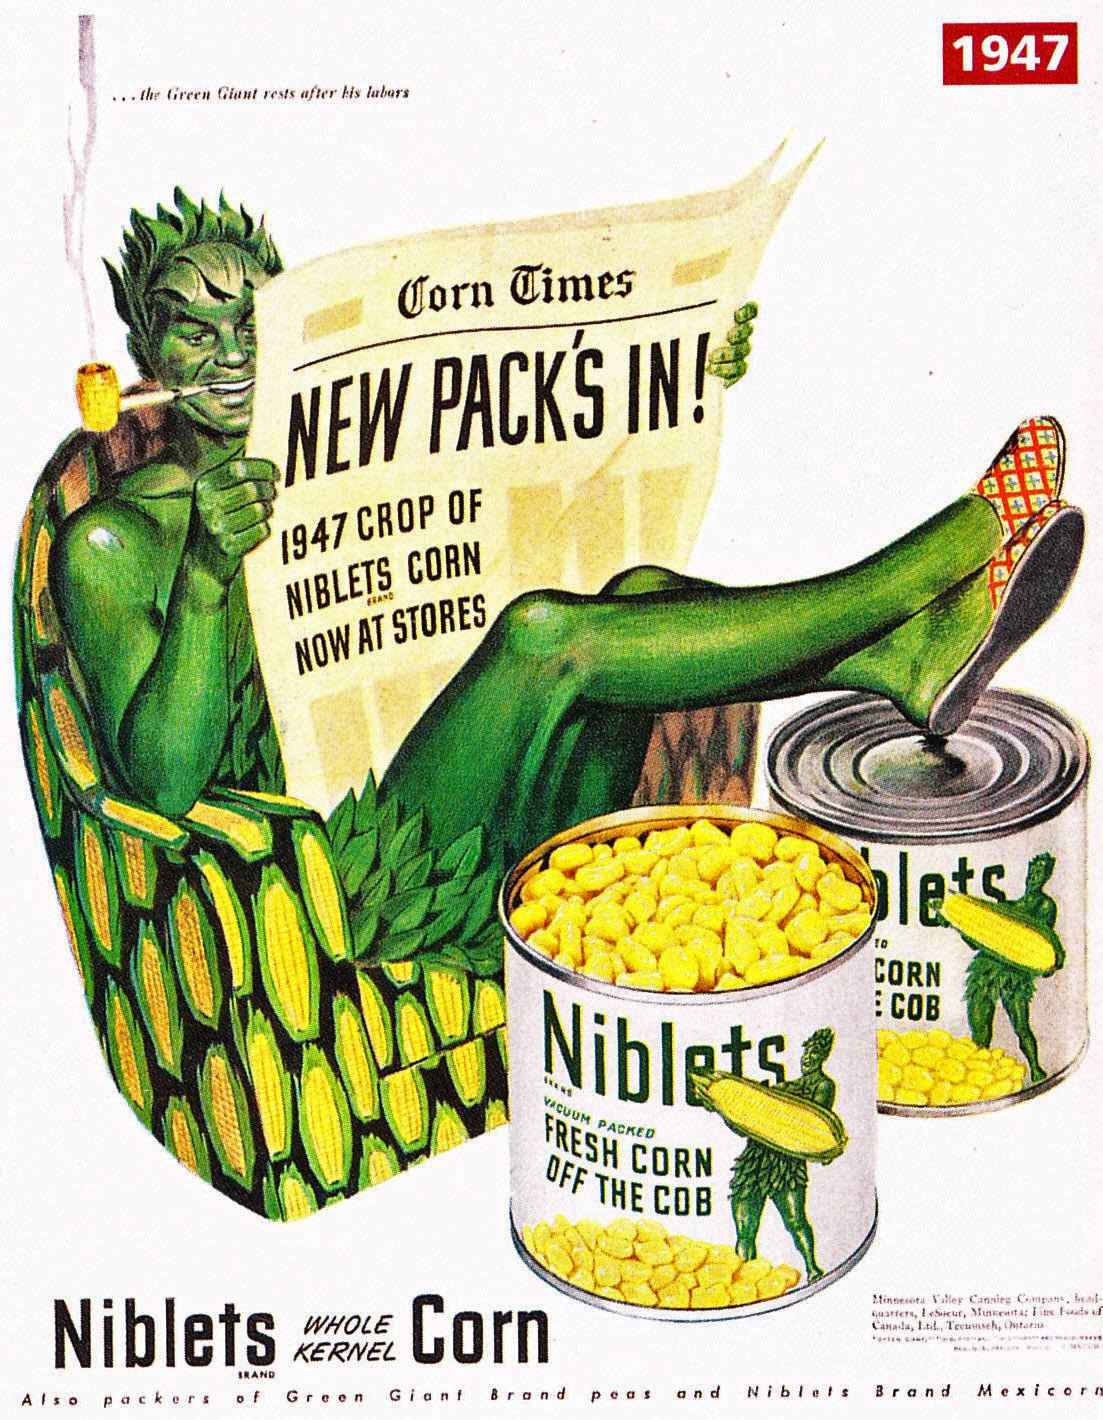 Green Giant La-Z-Boy Magazine Ad 1947